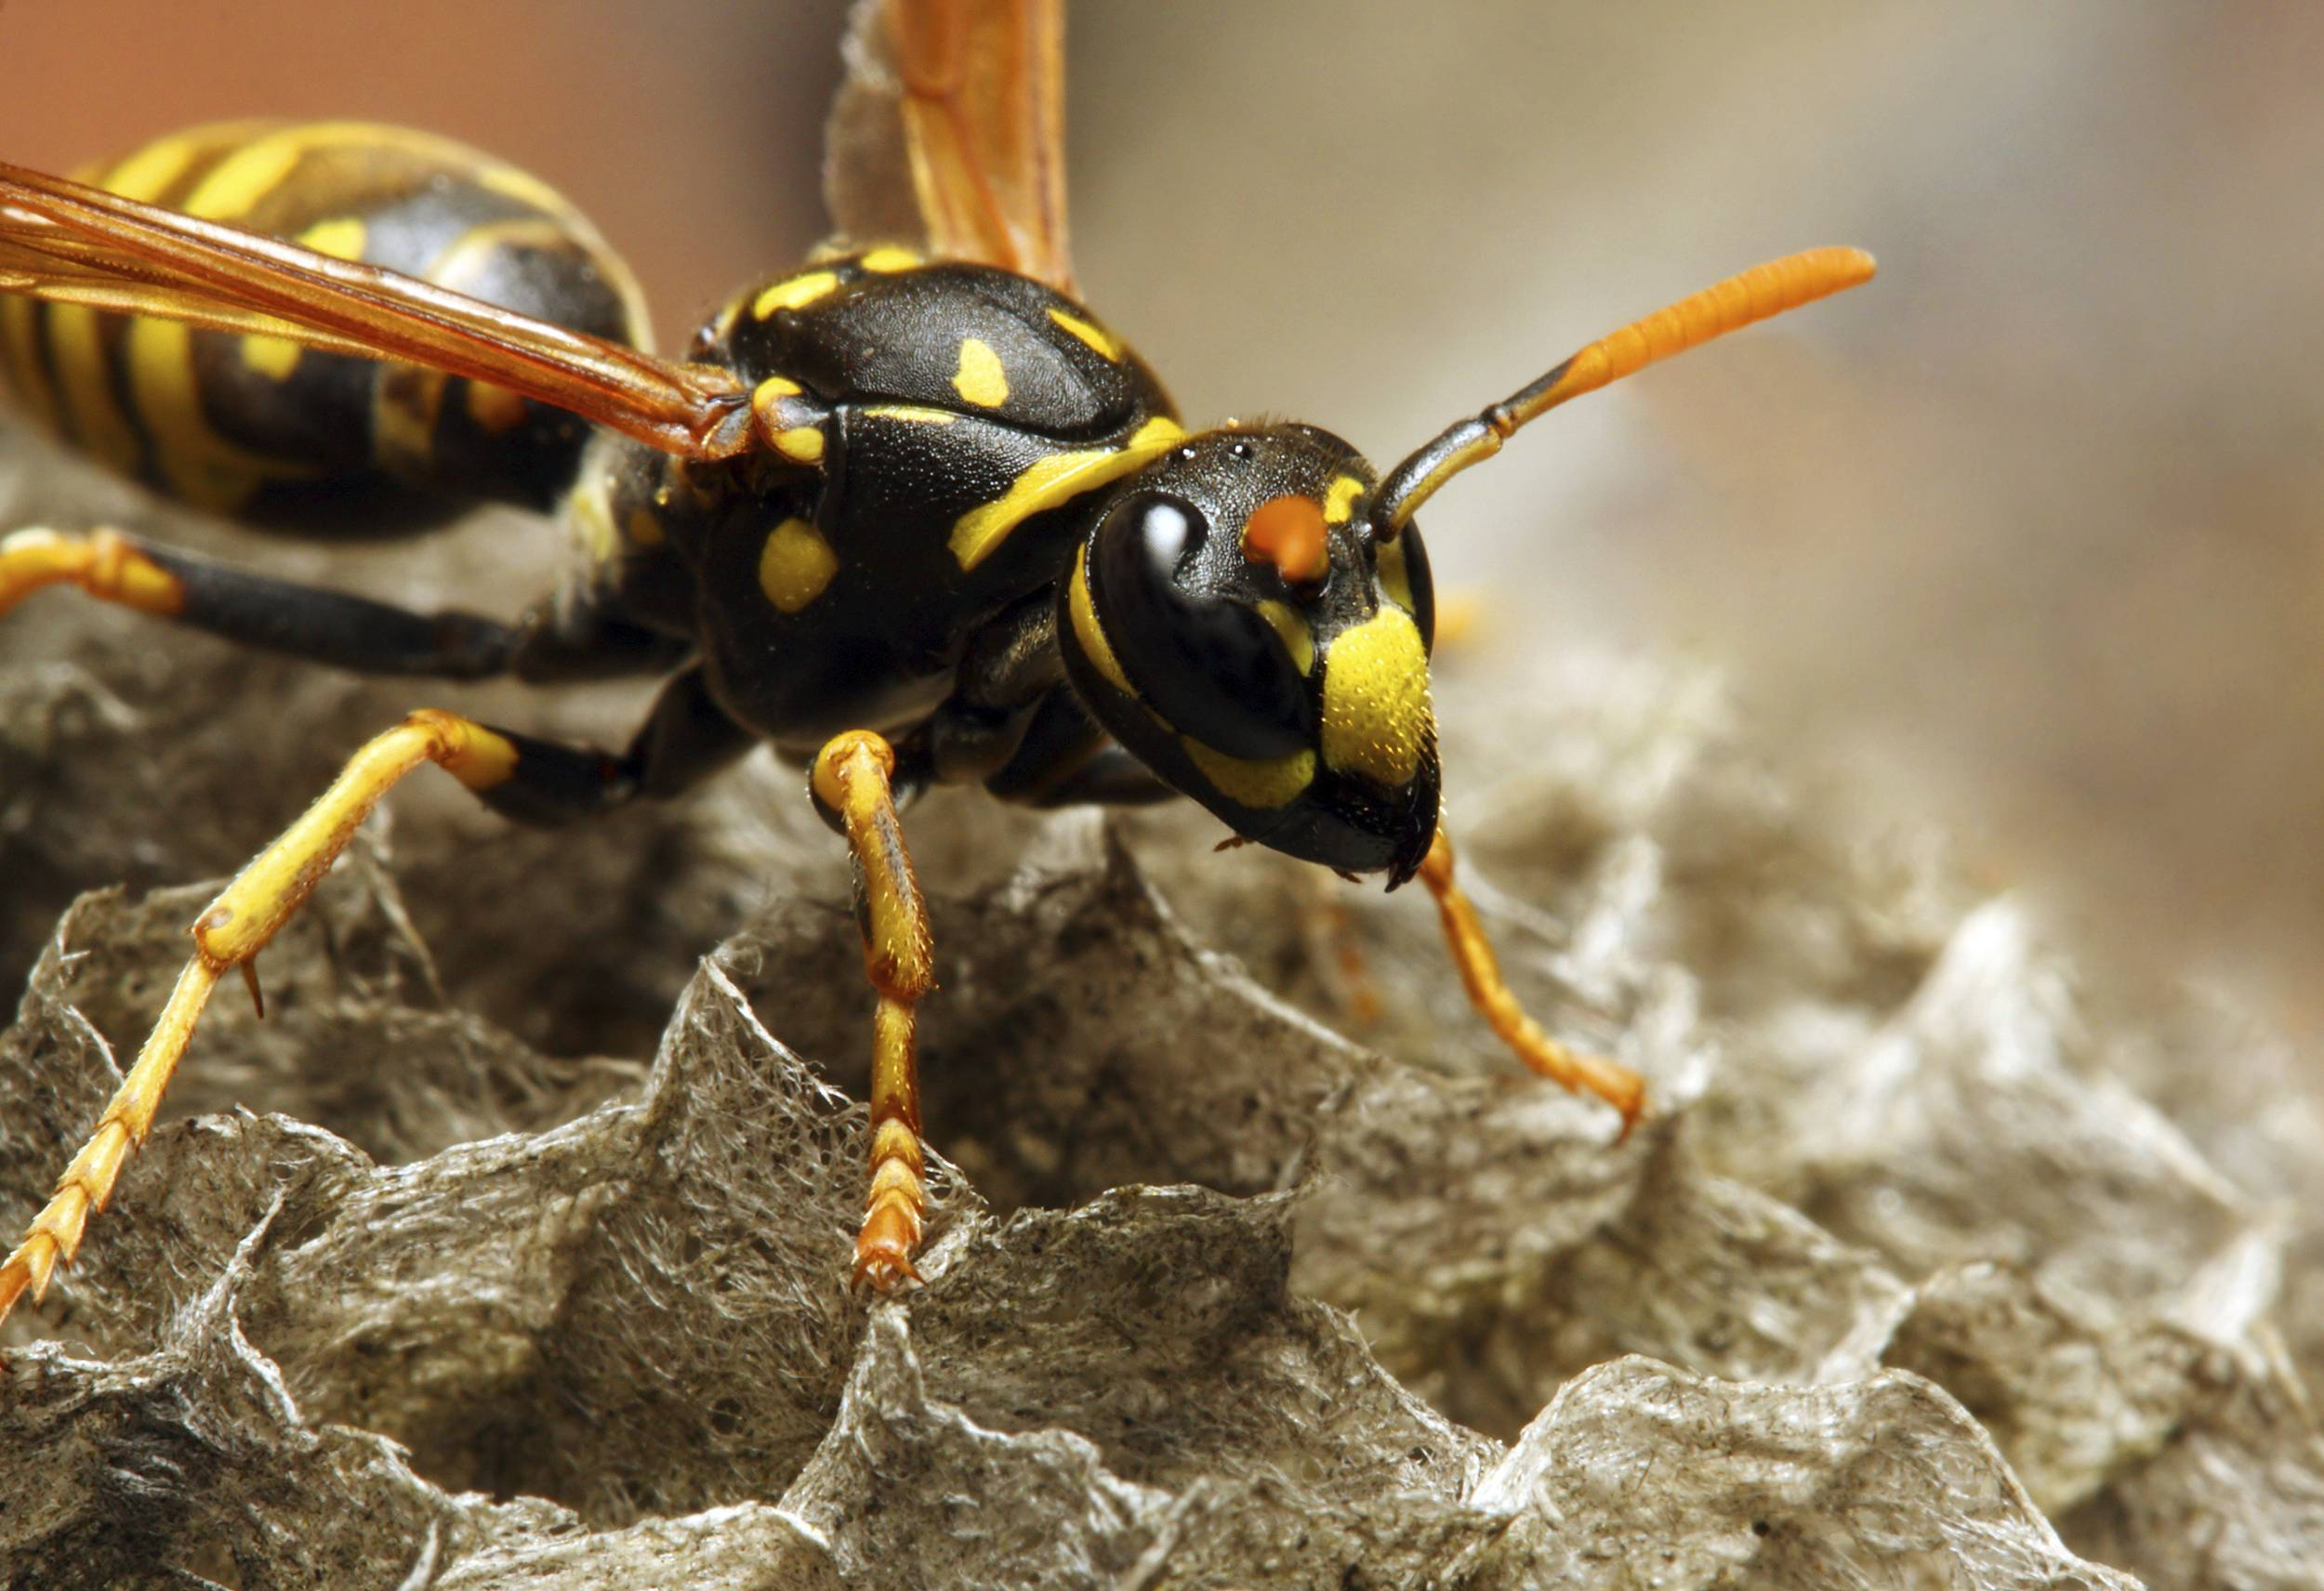 The Common wasp.